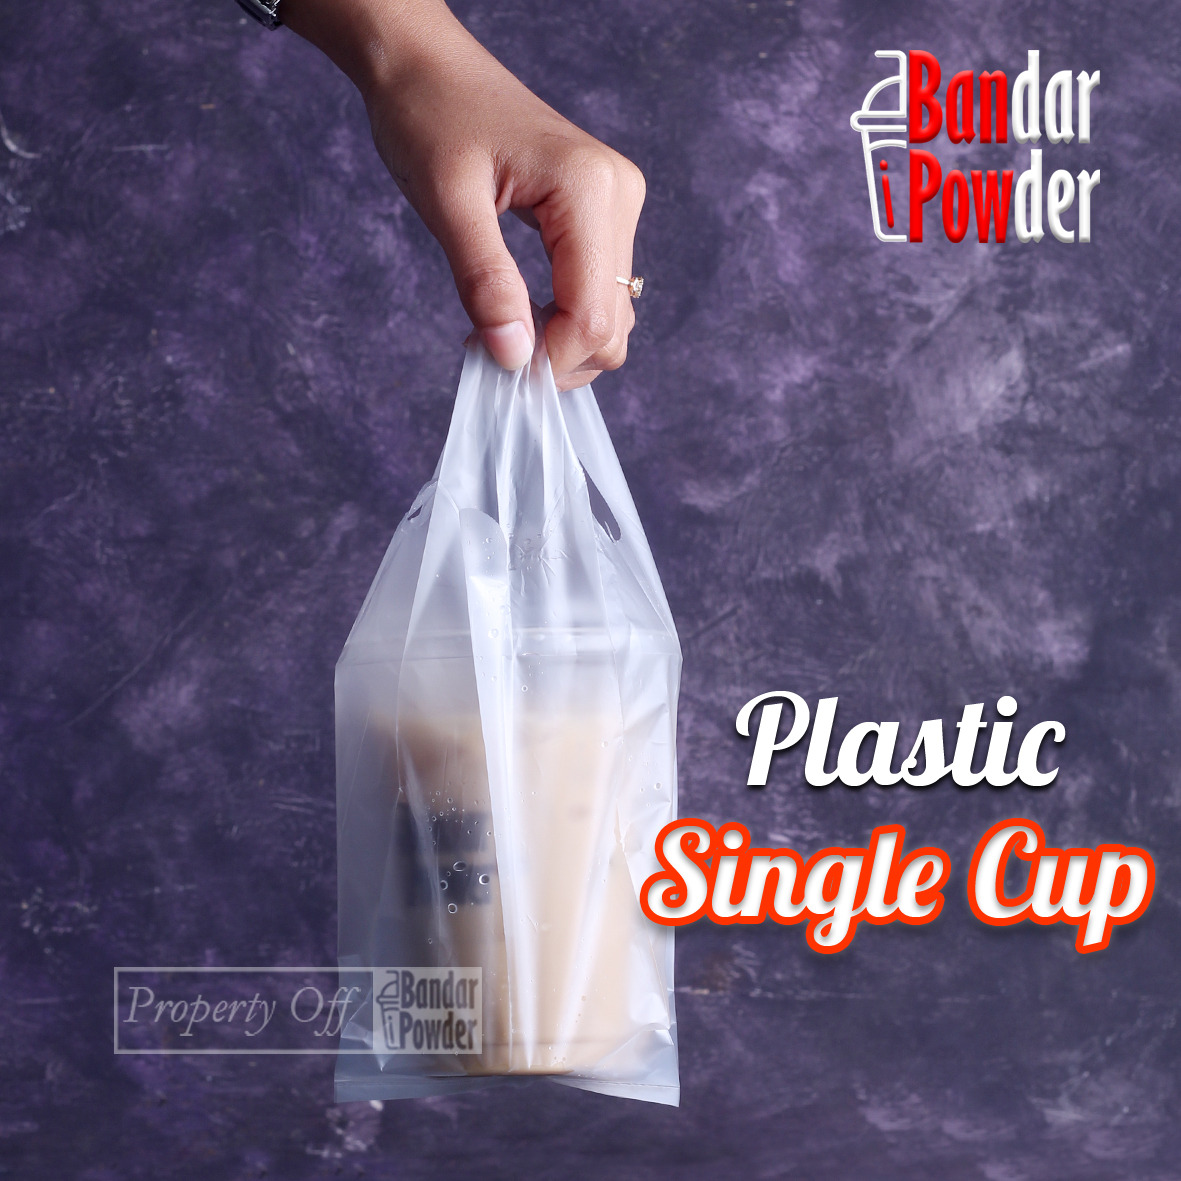 Jual Kantor Plastik Single Cup Kresek Take Away